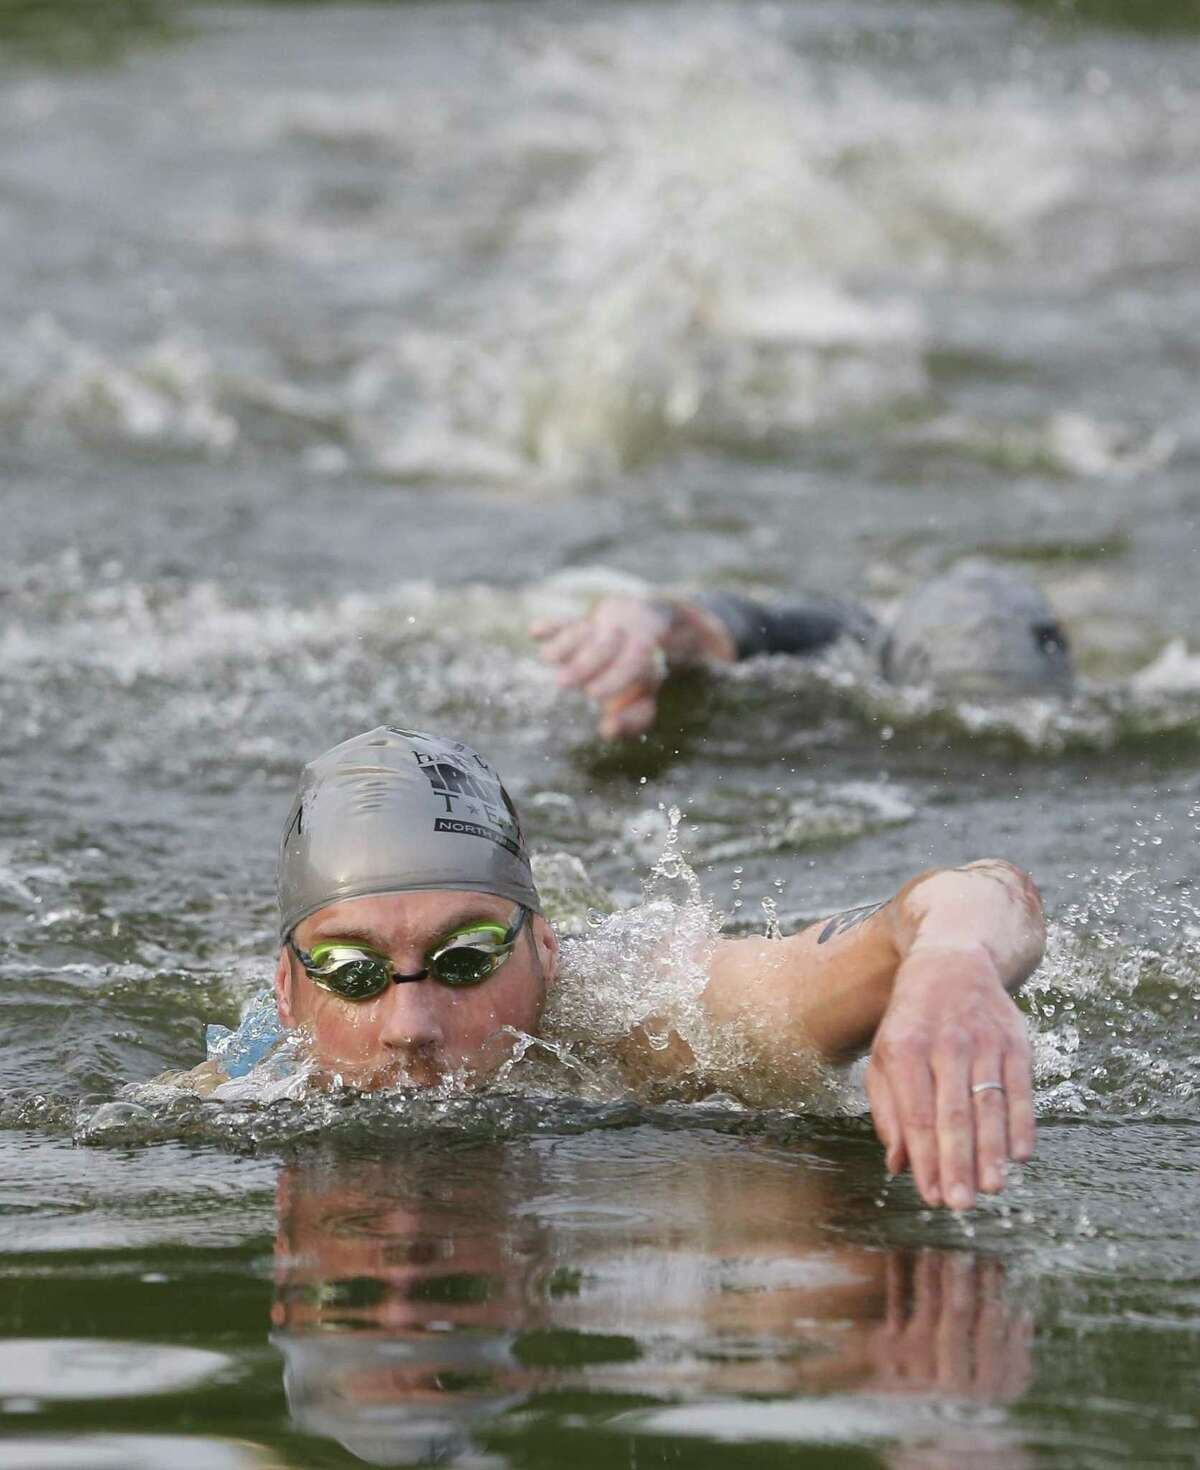 Professional athlete Sean Donnelly swims in as first in the swimming part at the 2018 Memorial Hermann IRONMAN® North American Championship Texas Triathlon on Saturday, April 28, 2018, in The Woodlands. The IRONMAN features 2.4 miles of swimming, 112 miles of biking and 26.2 miles of running. ( Yi-Chin Lee / Houston Chronicle )